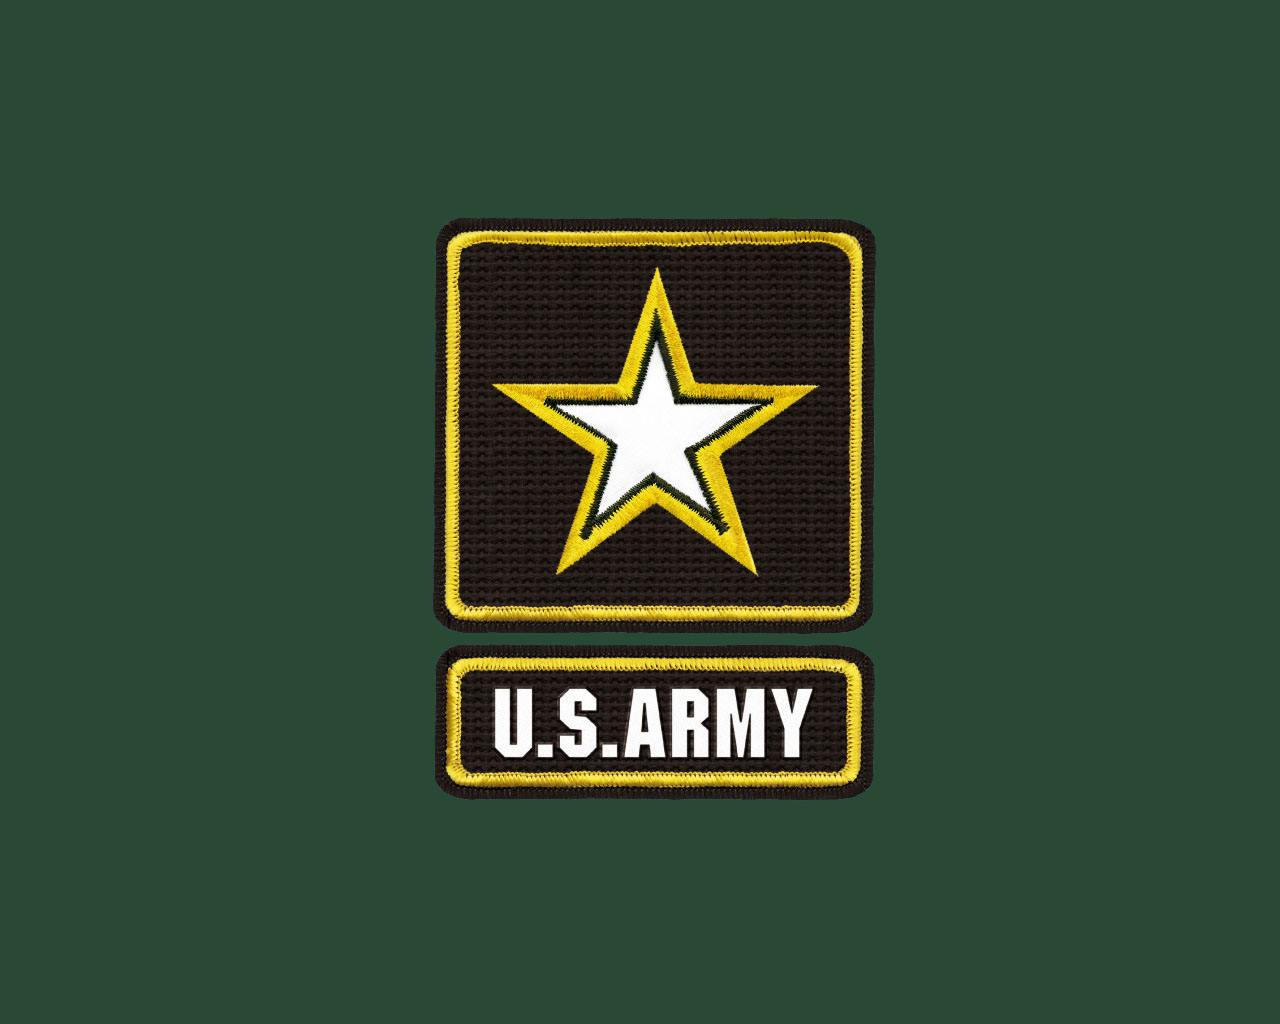 United States Army Wallpapers , Top Free United States Army